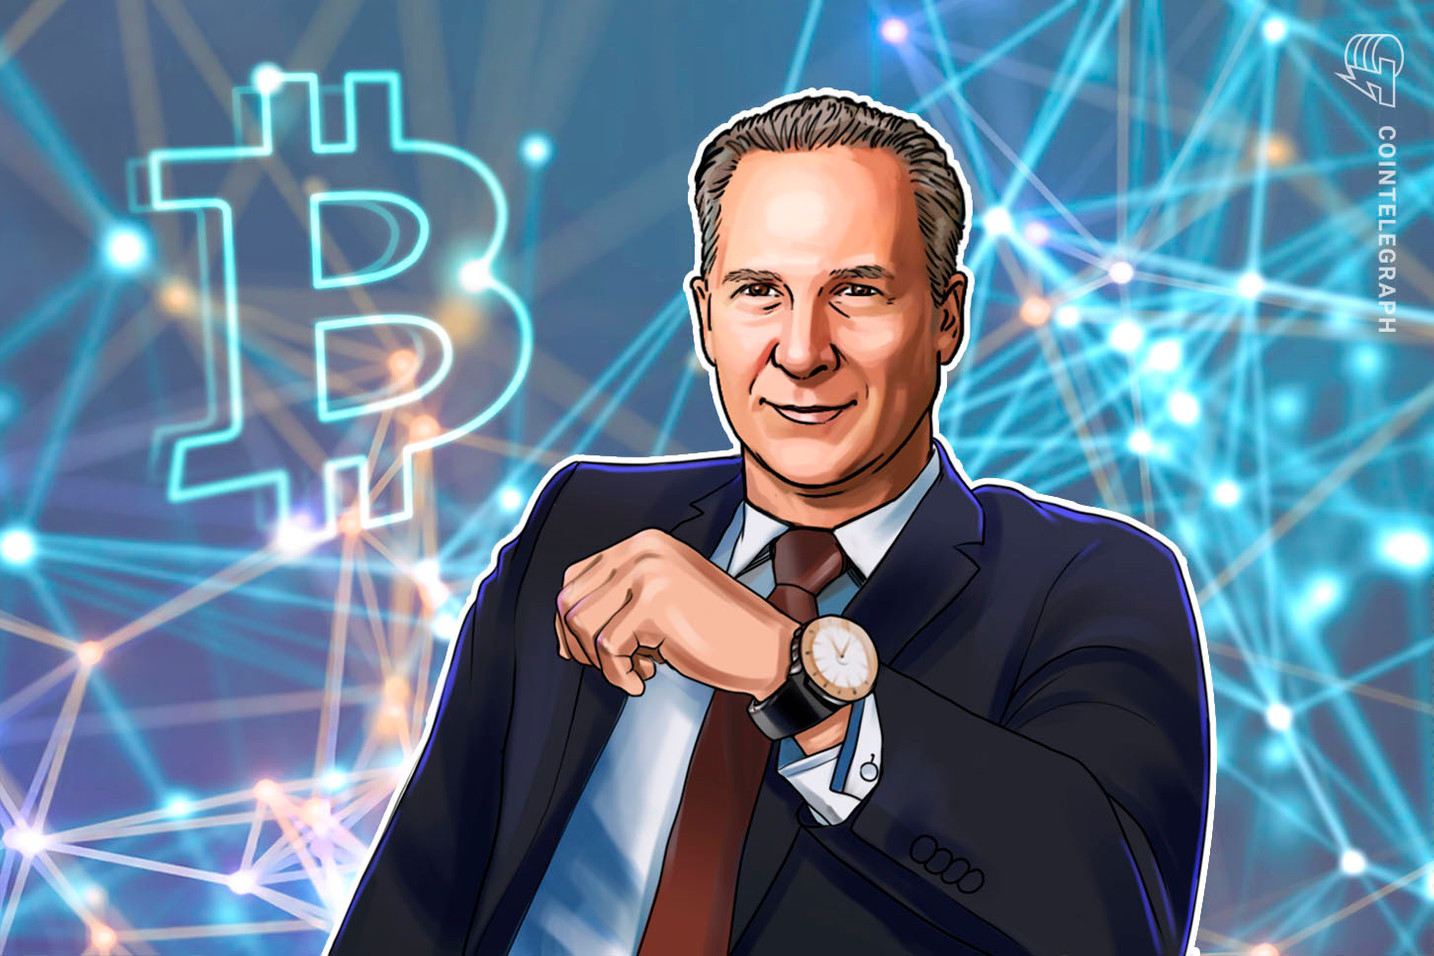 Peter del fante mining bitcoins wei dai bitcoins